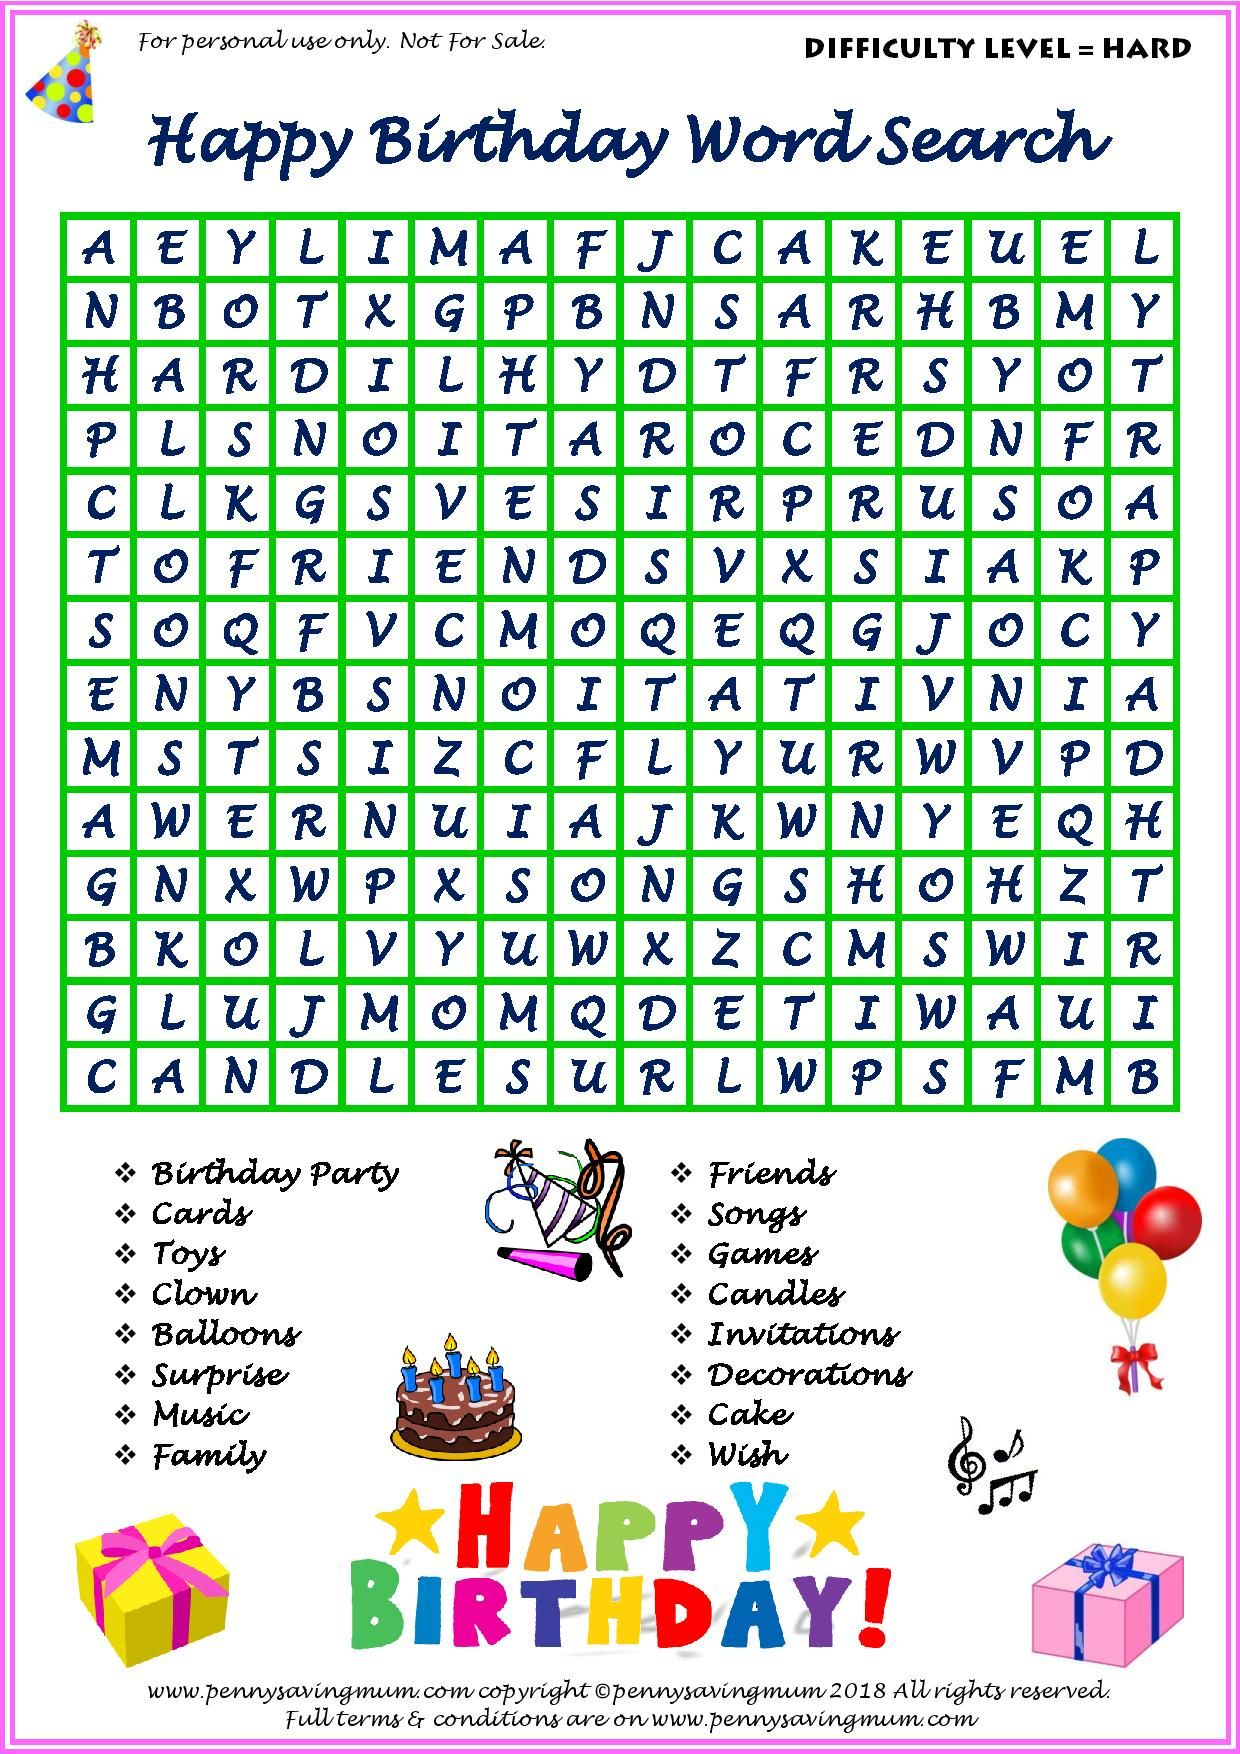 Word Search Happy Birthday Hard Version